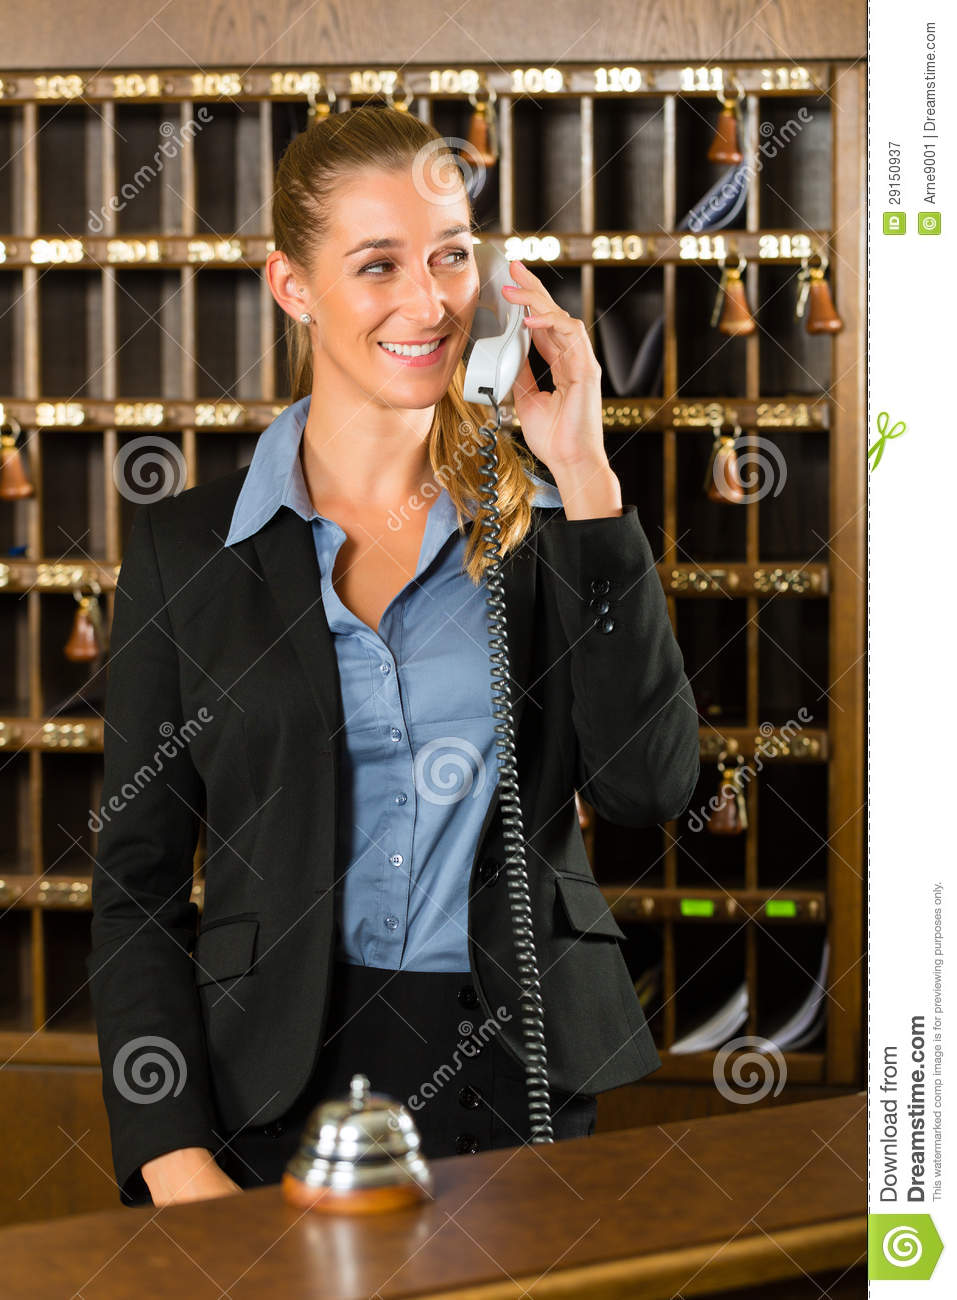 Reception Of Hotel  Desk Clerk Taking A Call Stock Image  Image of hotel friendly 29150937